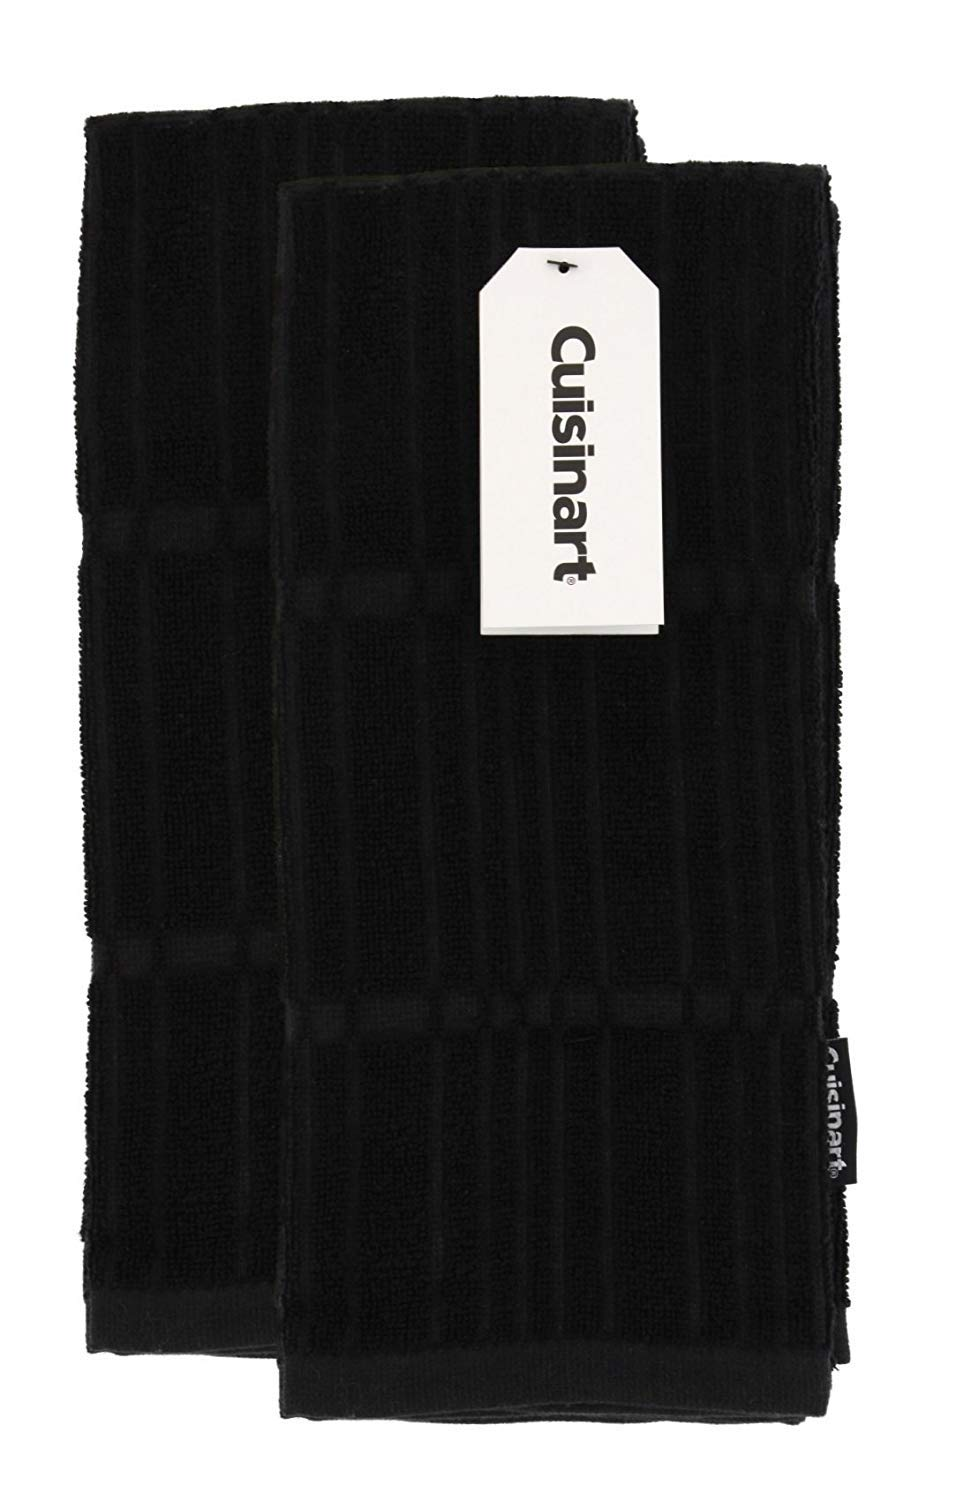 "Cuisinart Bamboo Dish Towel Set-Kitchen and Hand Towels for Drying Dishes / Hands - Absorbent, Soft and Anti-Microbial-Premium Bamboo / Cotton Blend, 2 Pack, 16 x 26"", Jet Black, Bark-Effect Design"